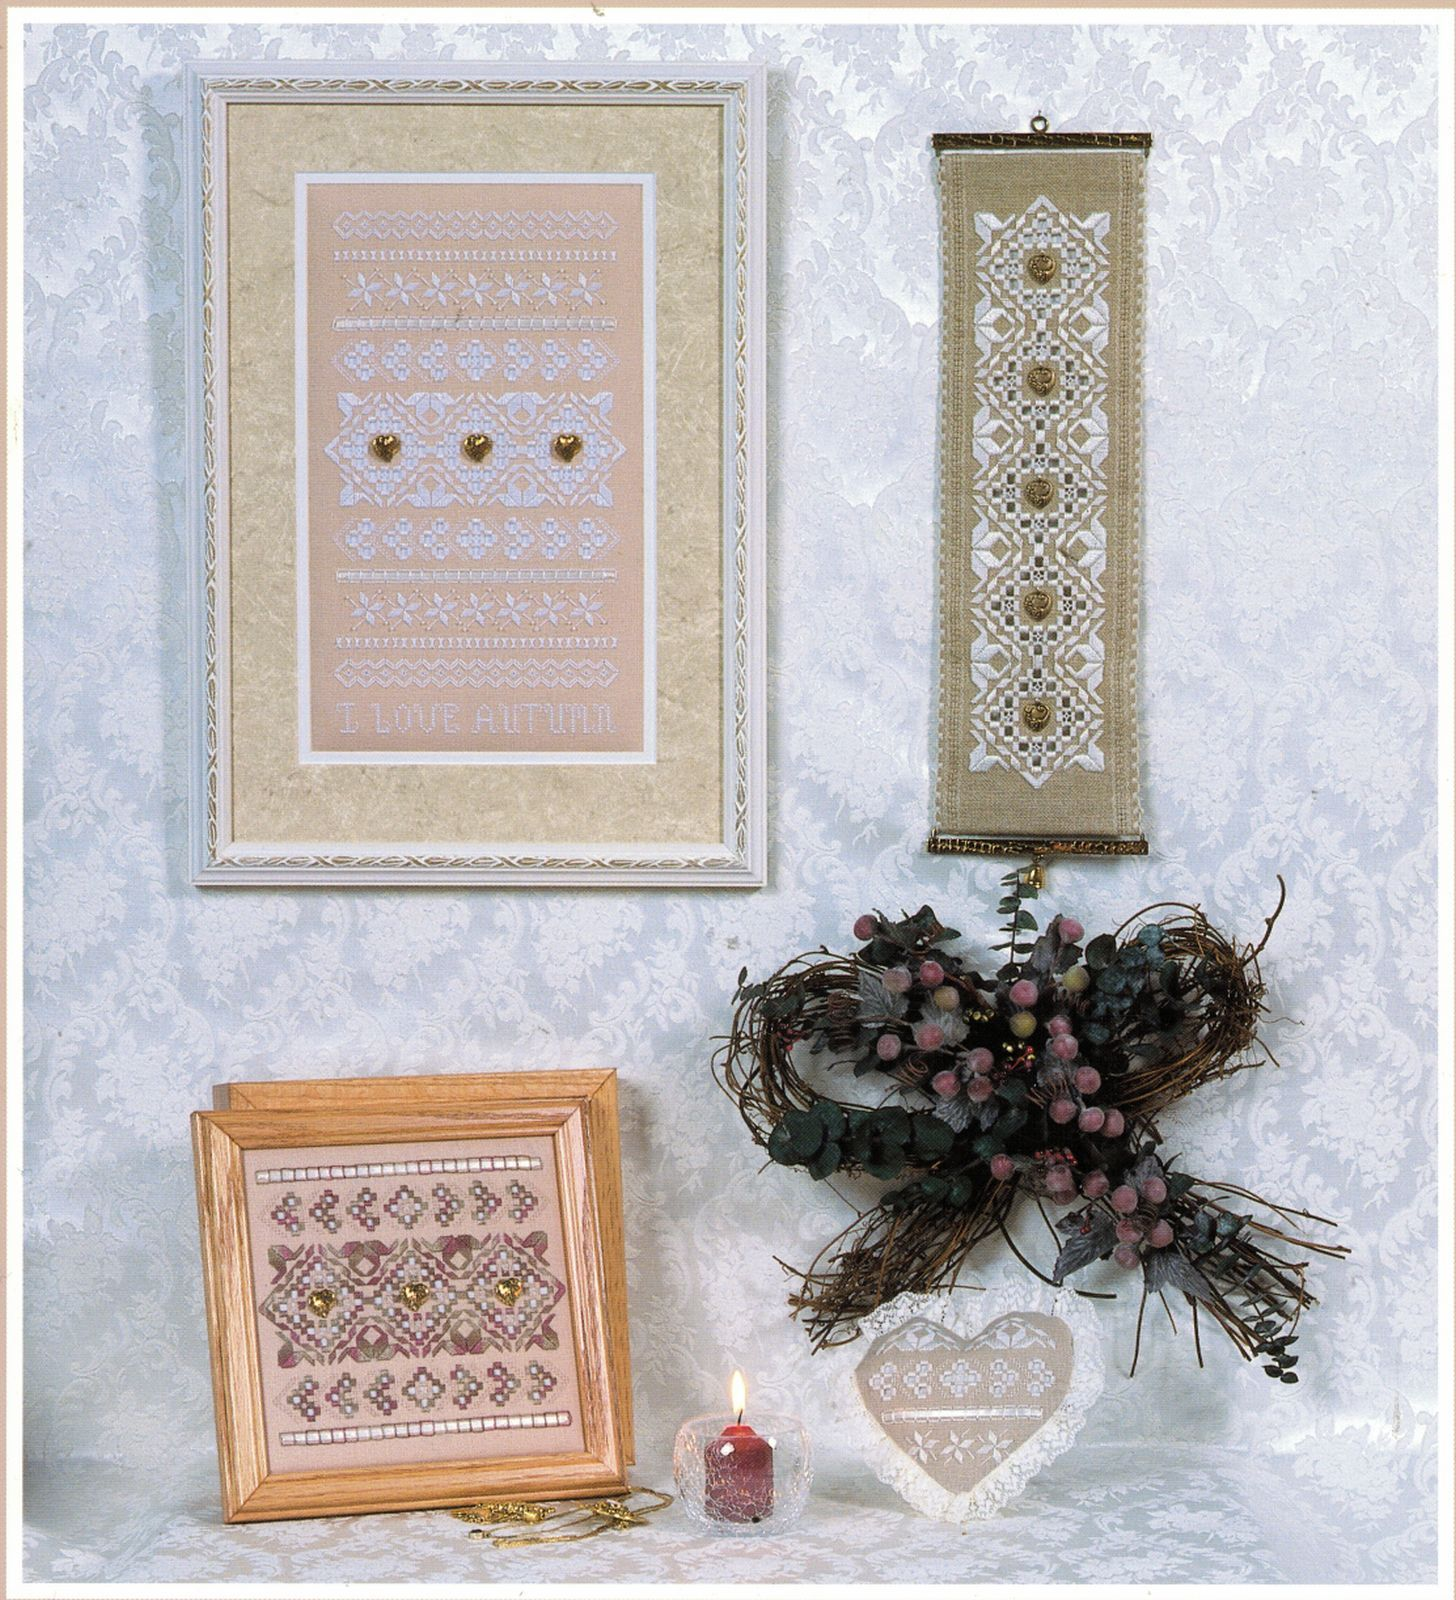 Primary image for I Love Autumn Hardanger Embroidery Seasonal Sampler Rosalyn Watnemo Book